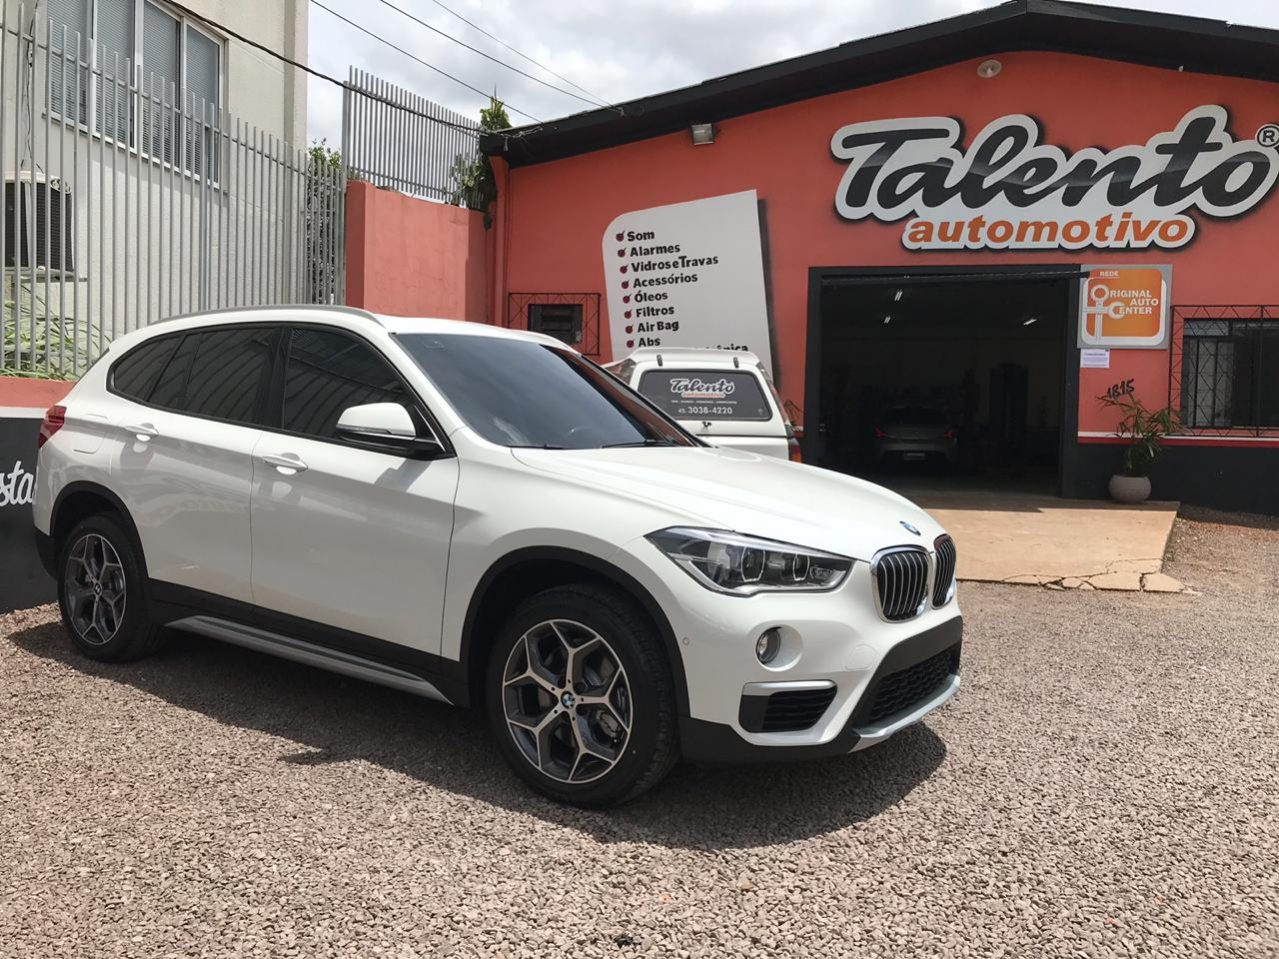 Talento-automotivo-cascavel-pr-bmw-x1